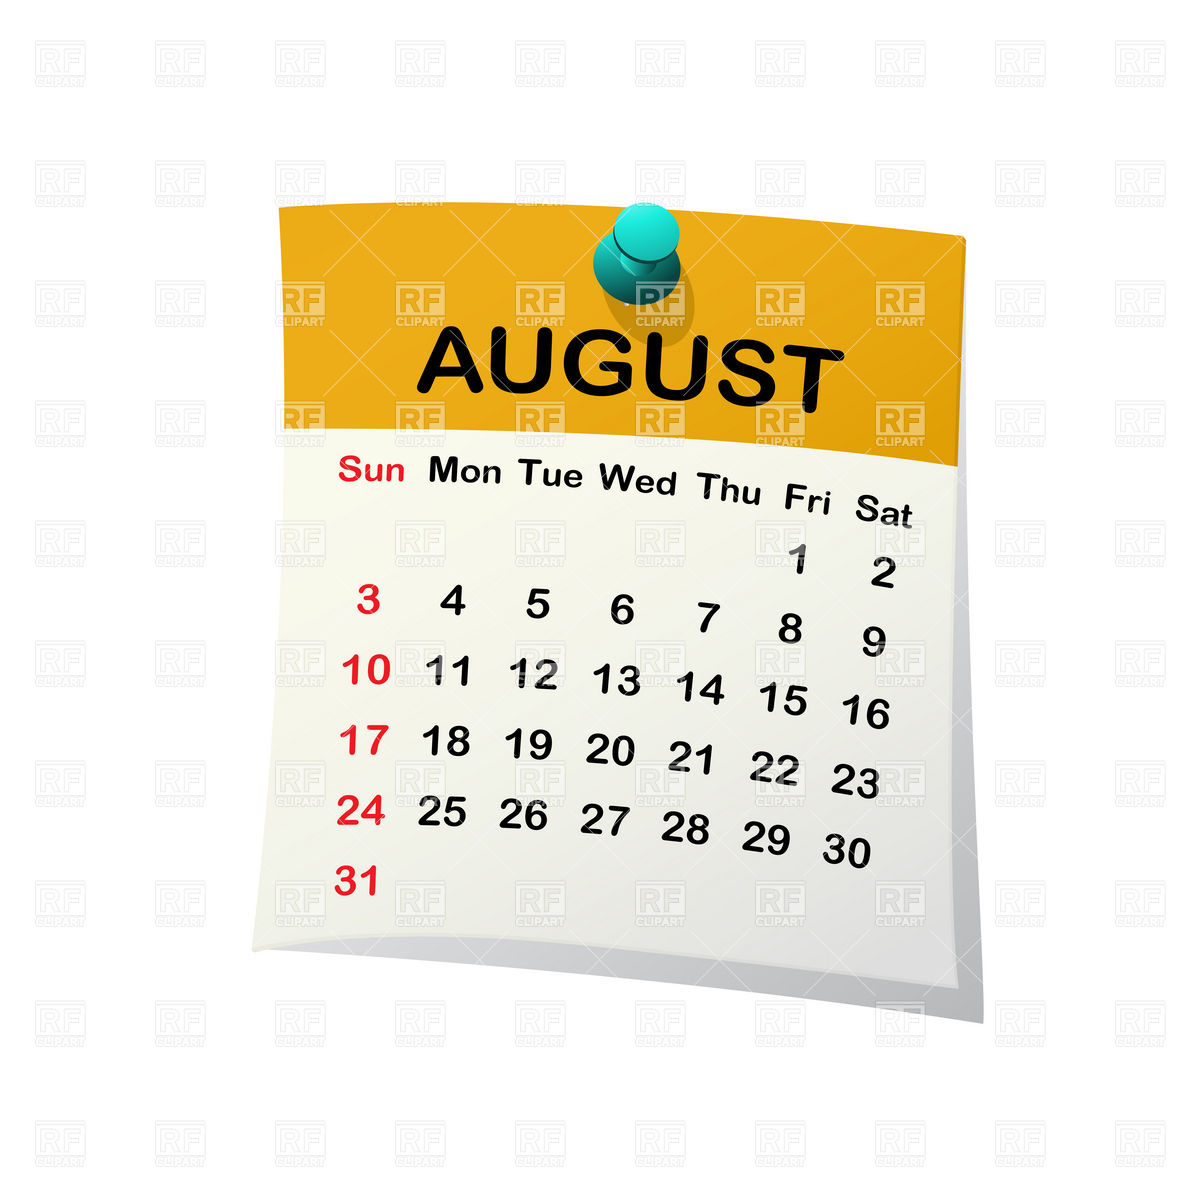 August 2014 Month Calendar 20541 Design Elements Download Royalty